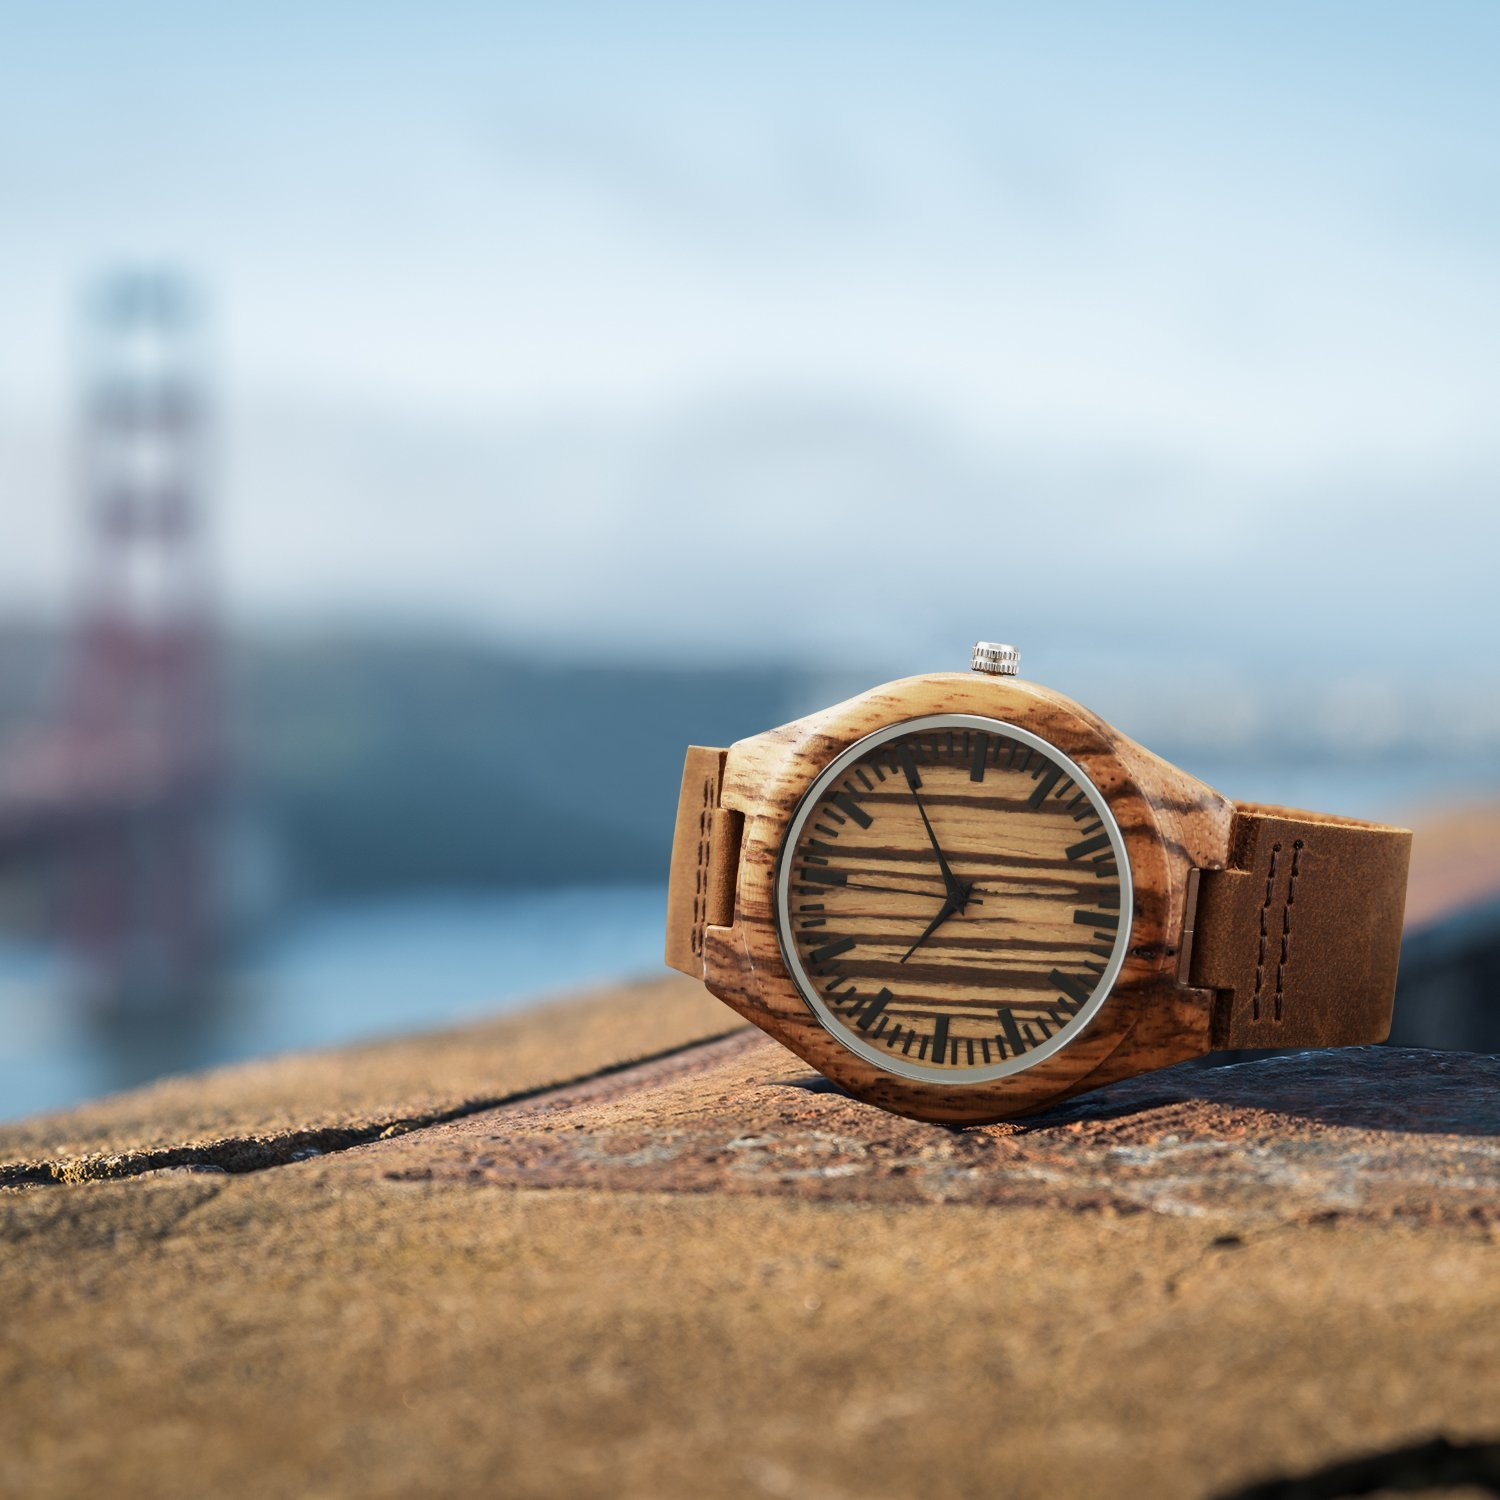 CUCOL Wooden Watches For Men Fashion Casual Watch Brown Cow Leather Strap Wood Watch With Box (Stripe) by CUCOL (Image #4)